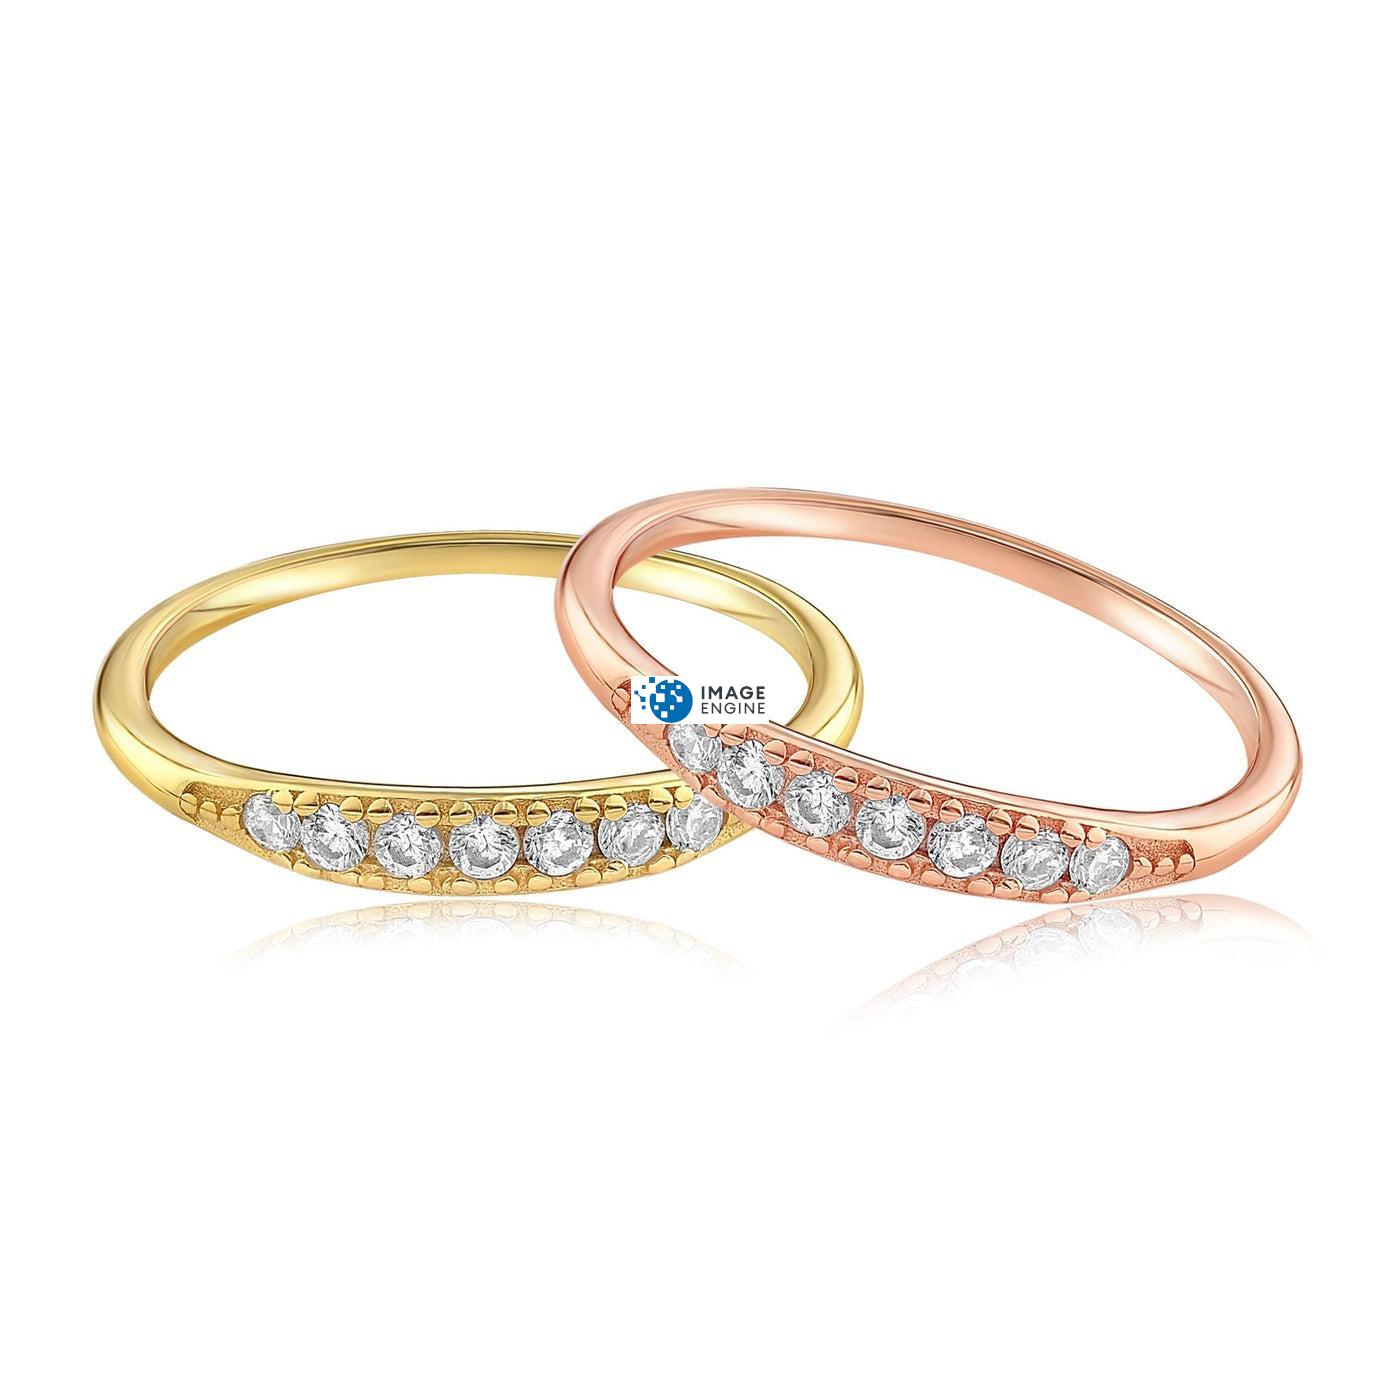 Kathleen Stack Ring - Front View Side by Side - 18K Rose Gold Vermeil and 18K Yellow Gold Vermeil